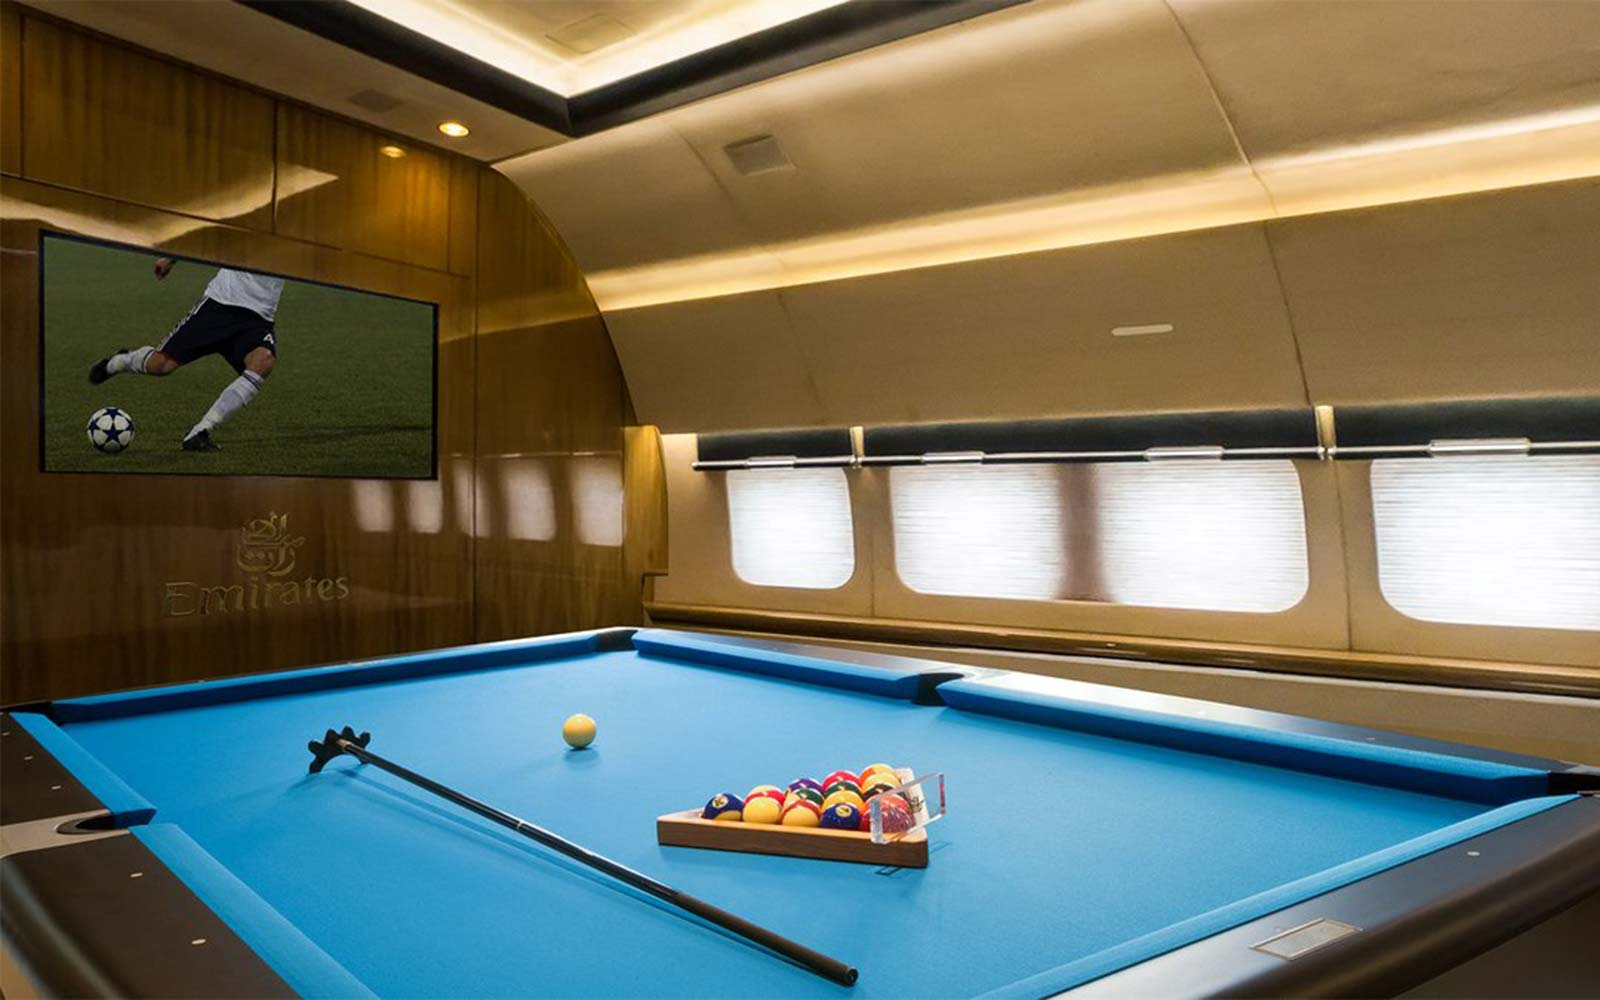 Emirates pool plane